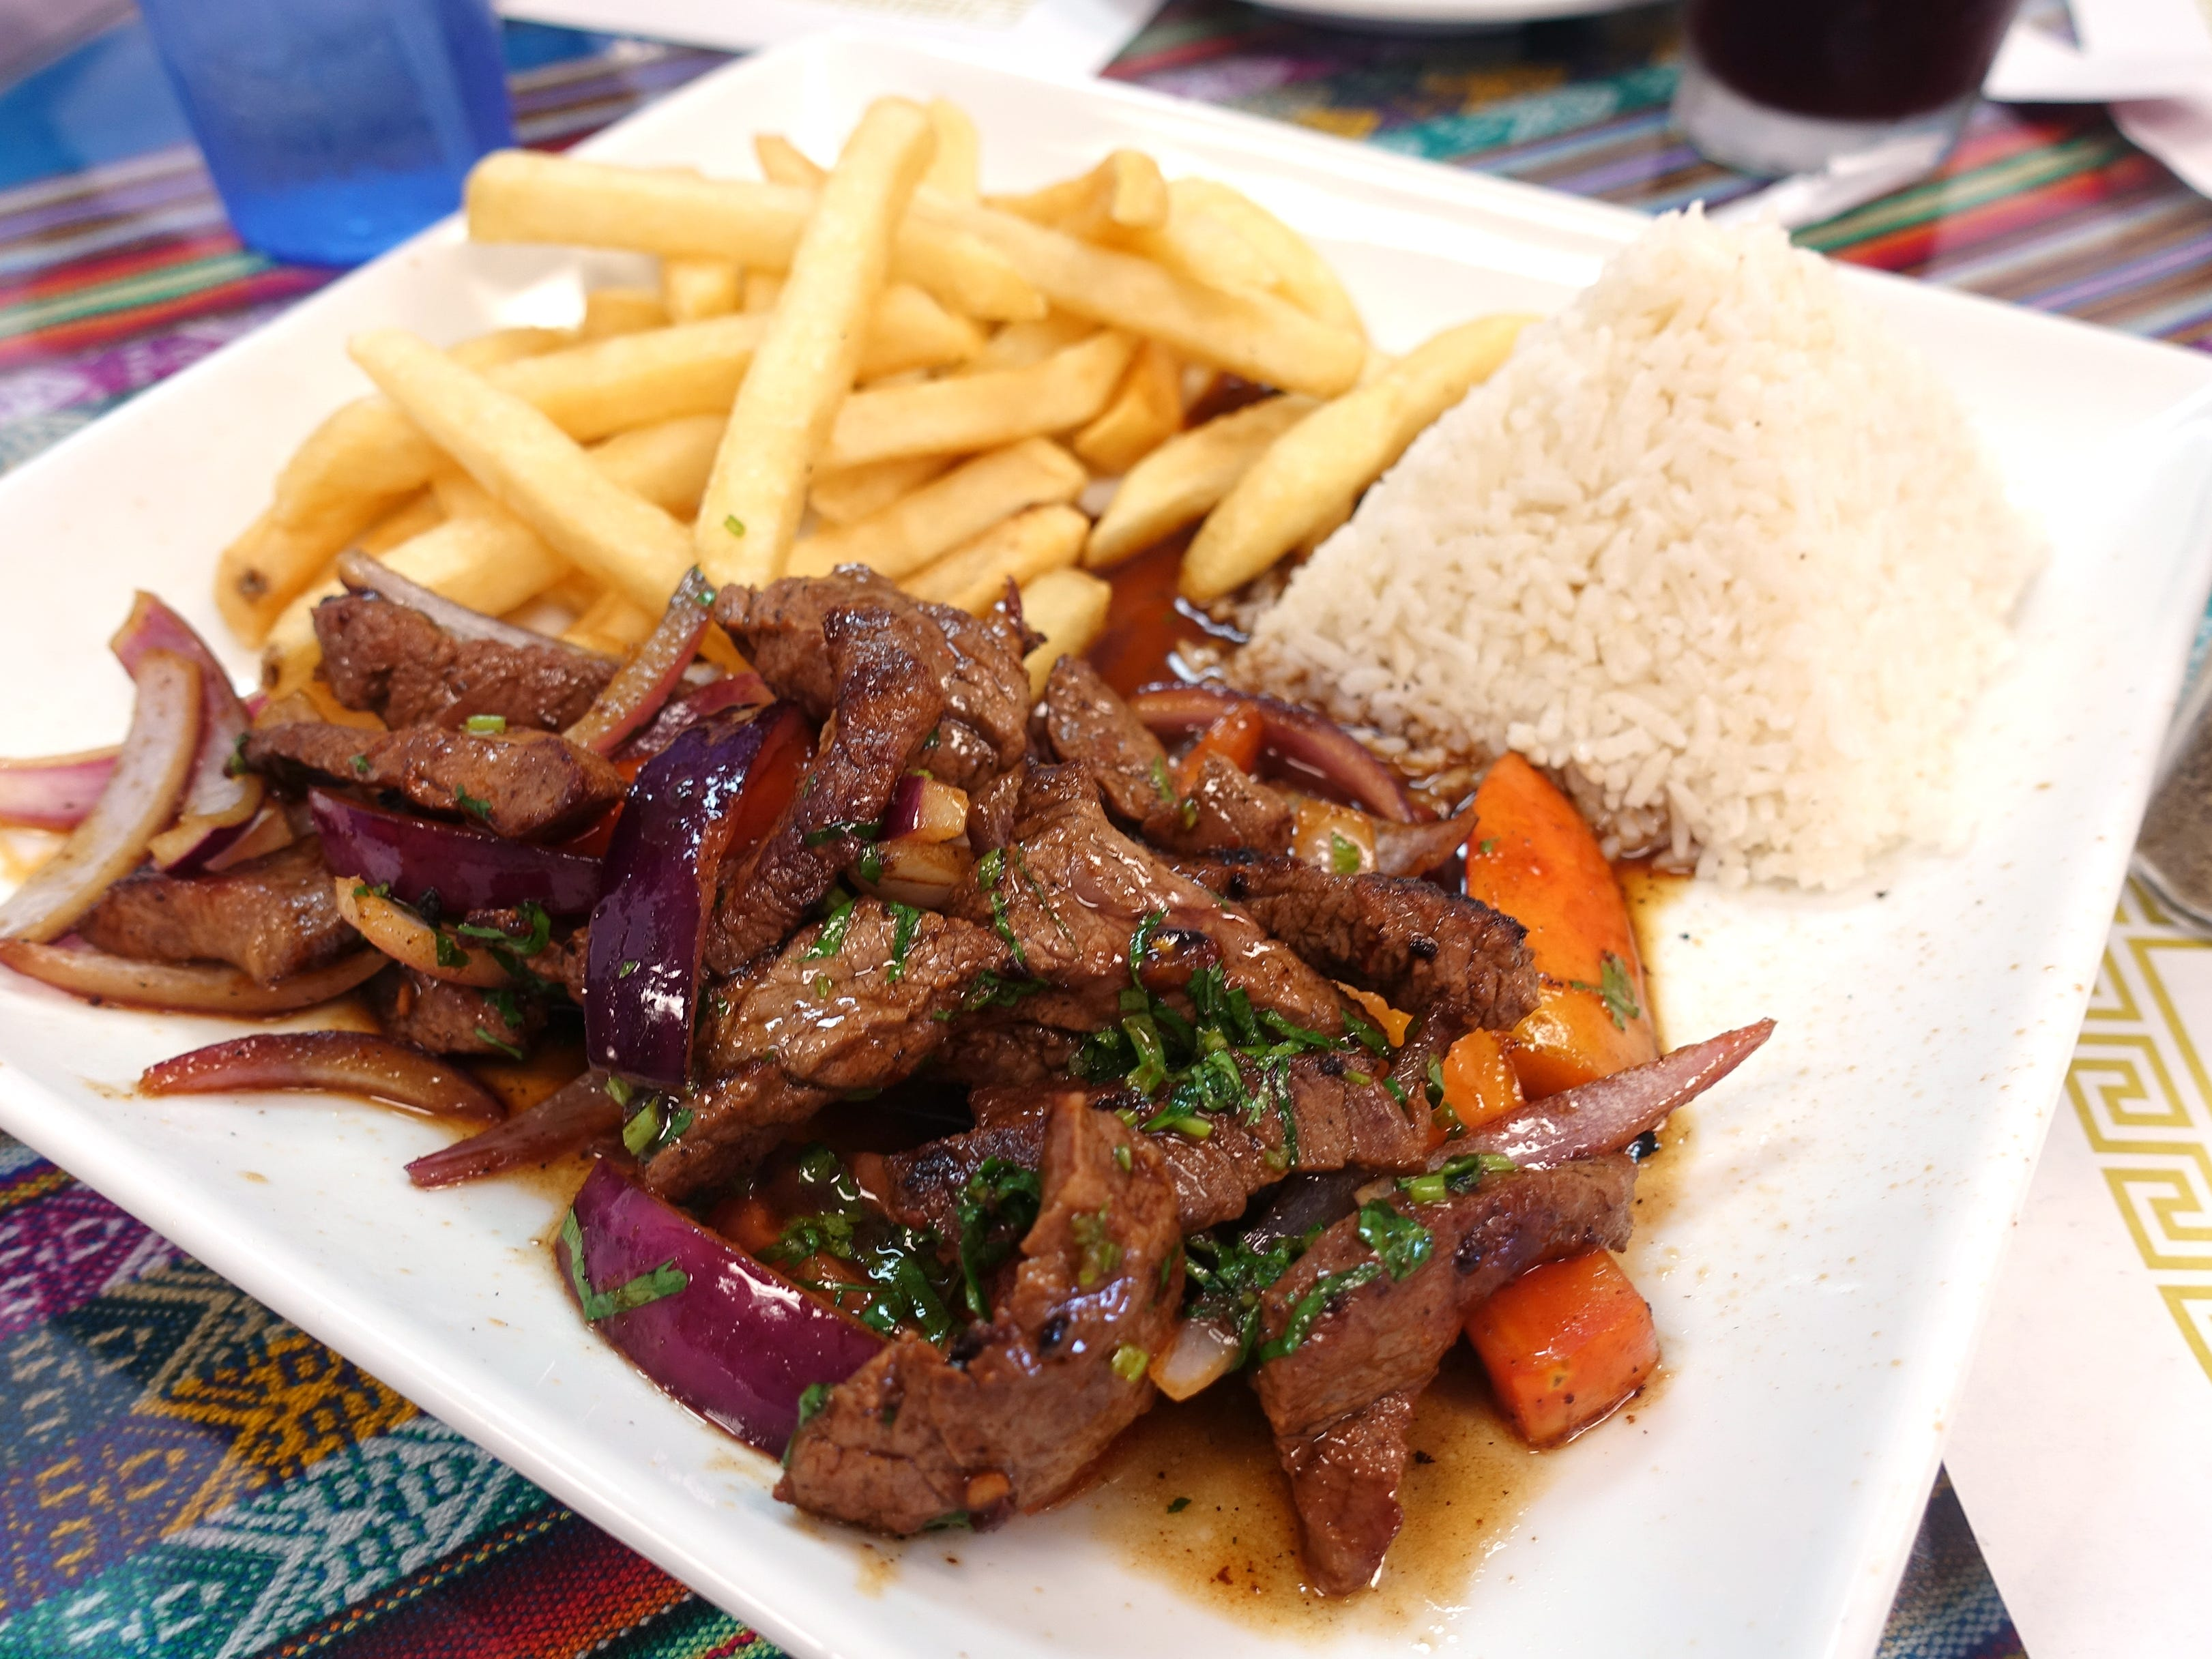 Lomo saltado with beef loin, onions, tomatoes, cilantro mignonette and French fries at Los Andes Peruvian Cuisine in Phoenix.